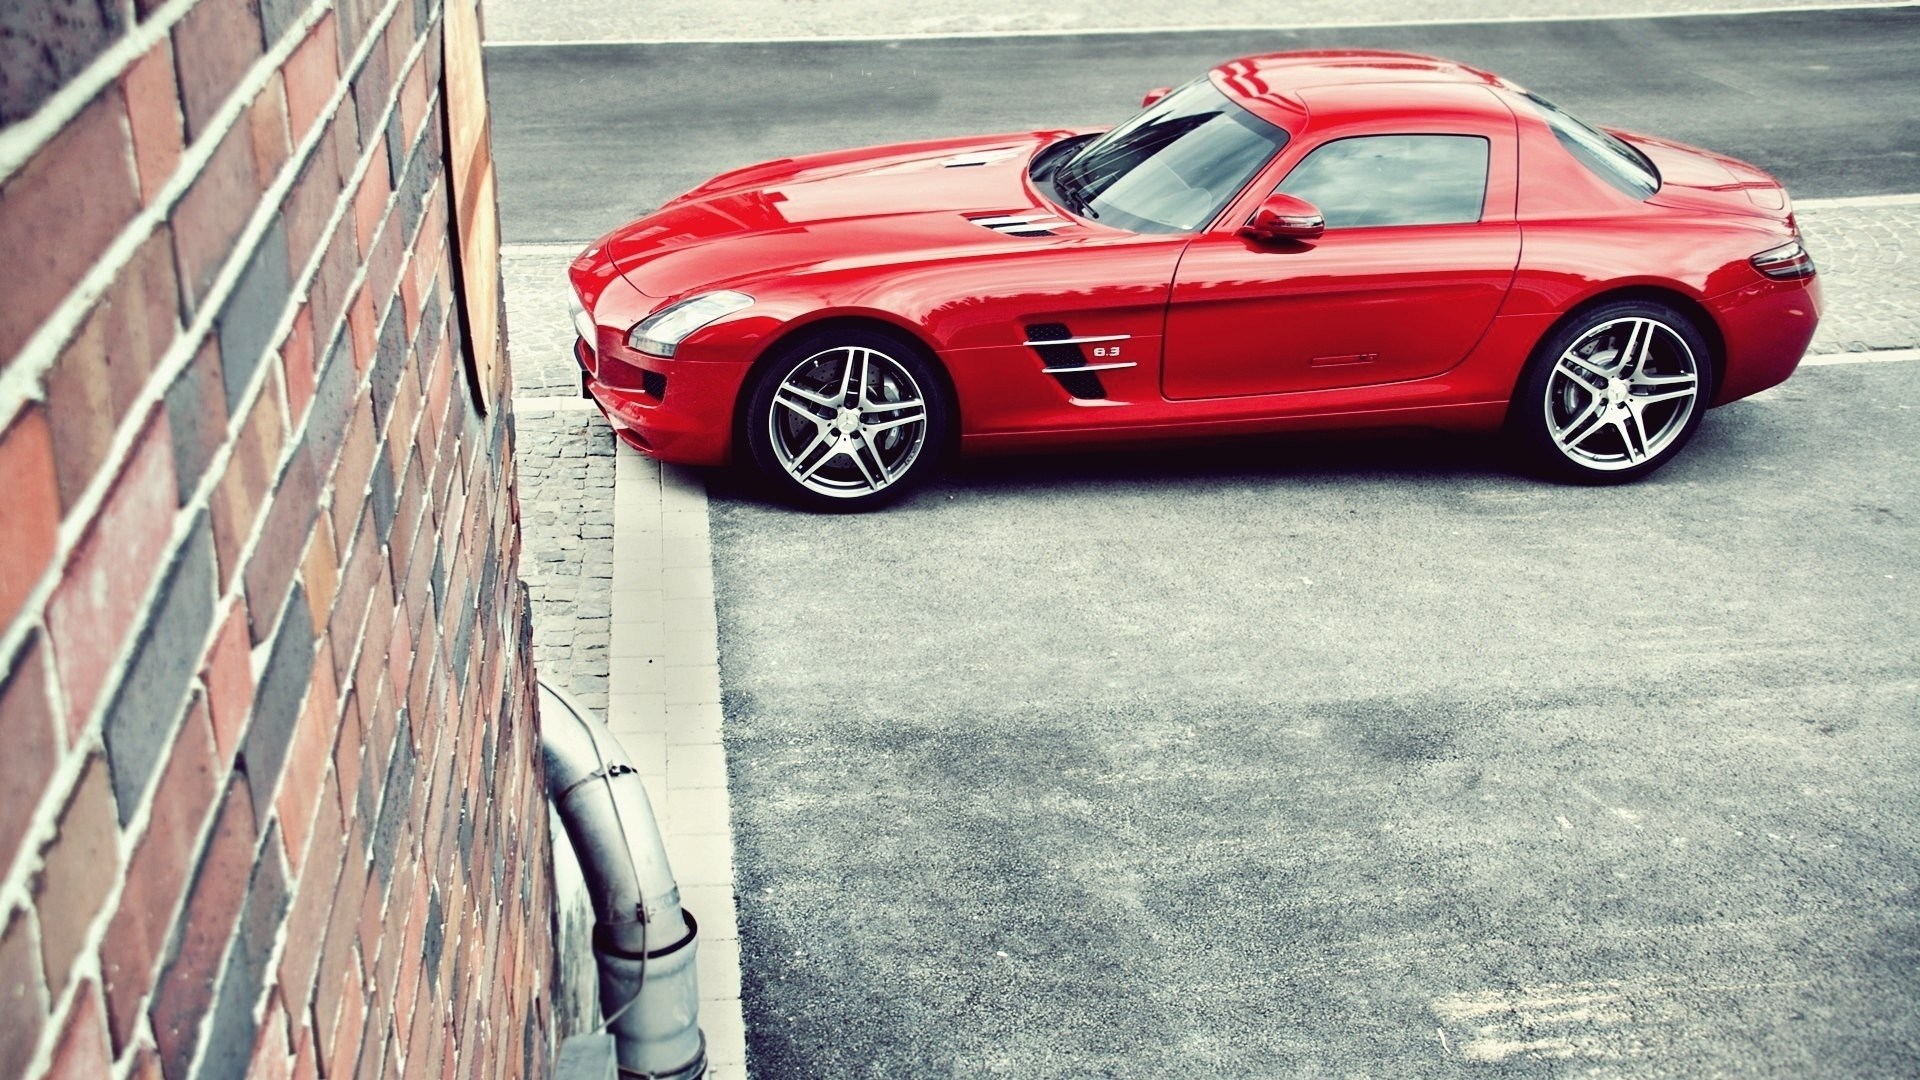 Mercedes-Benz SLS AMG Red Car Parking